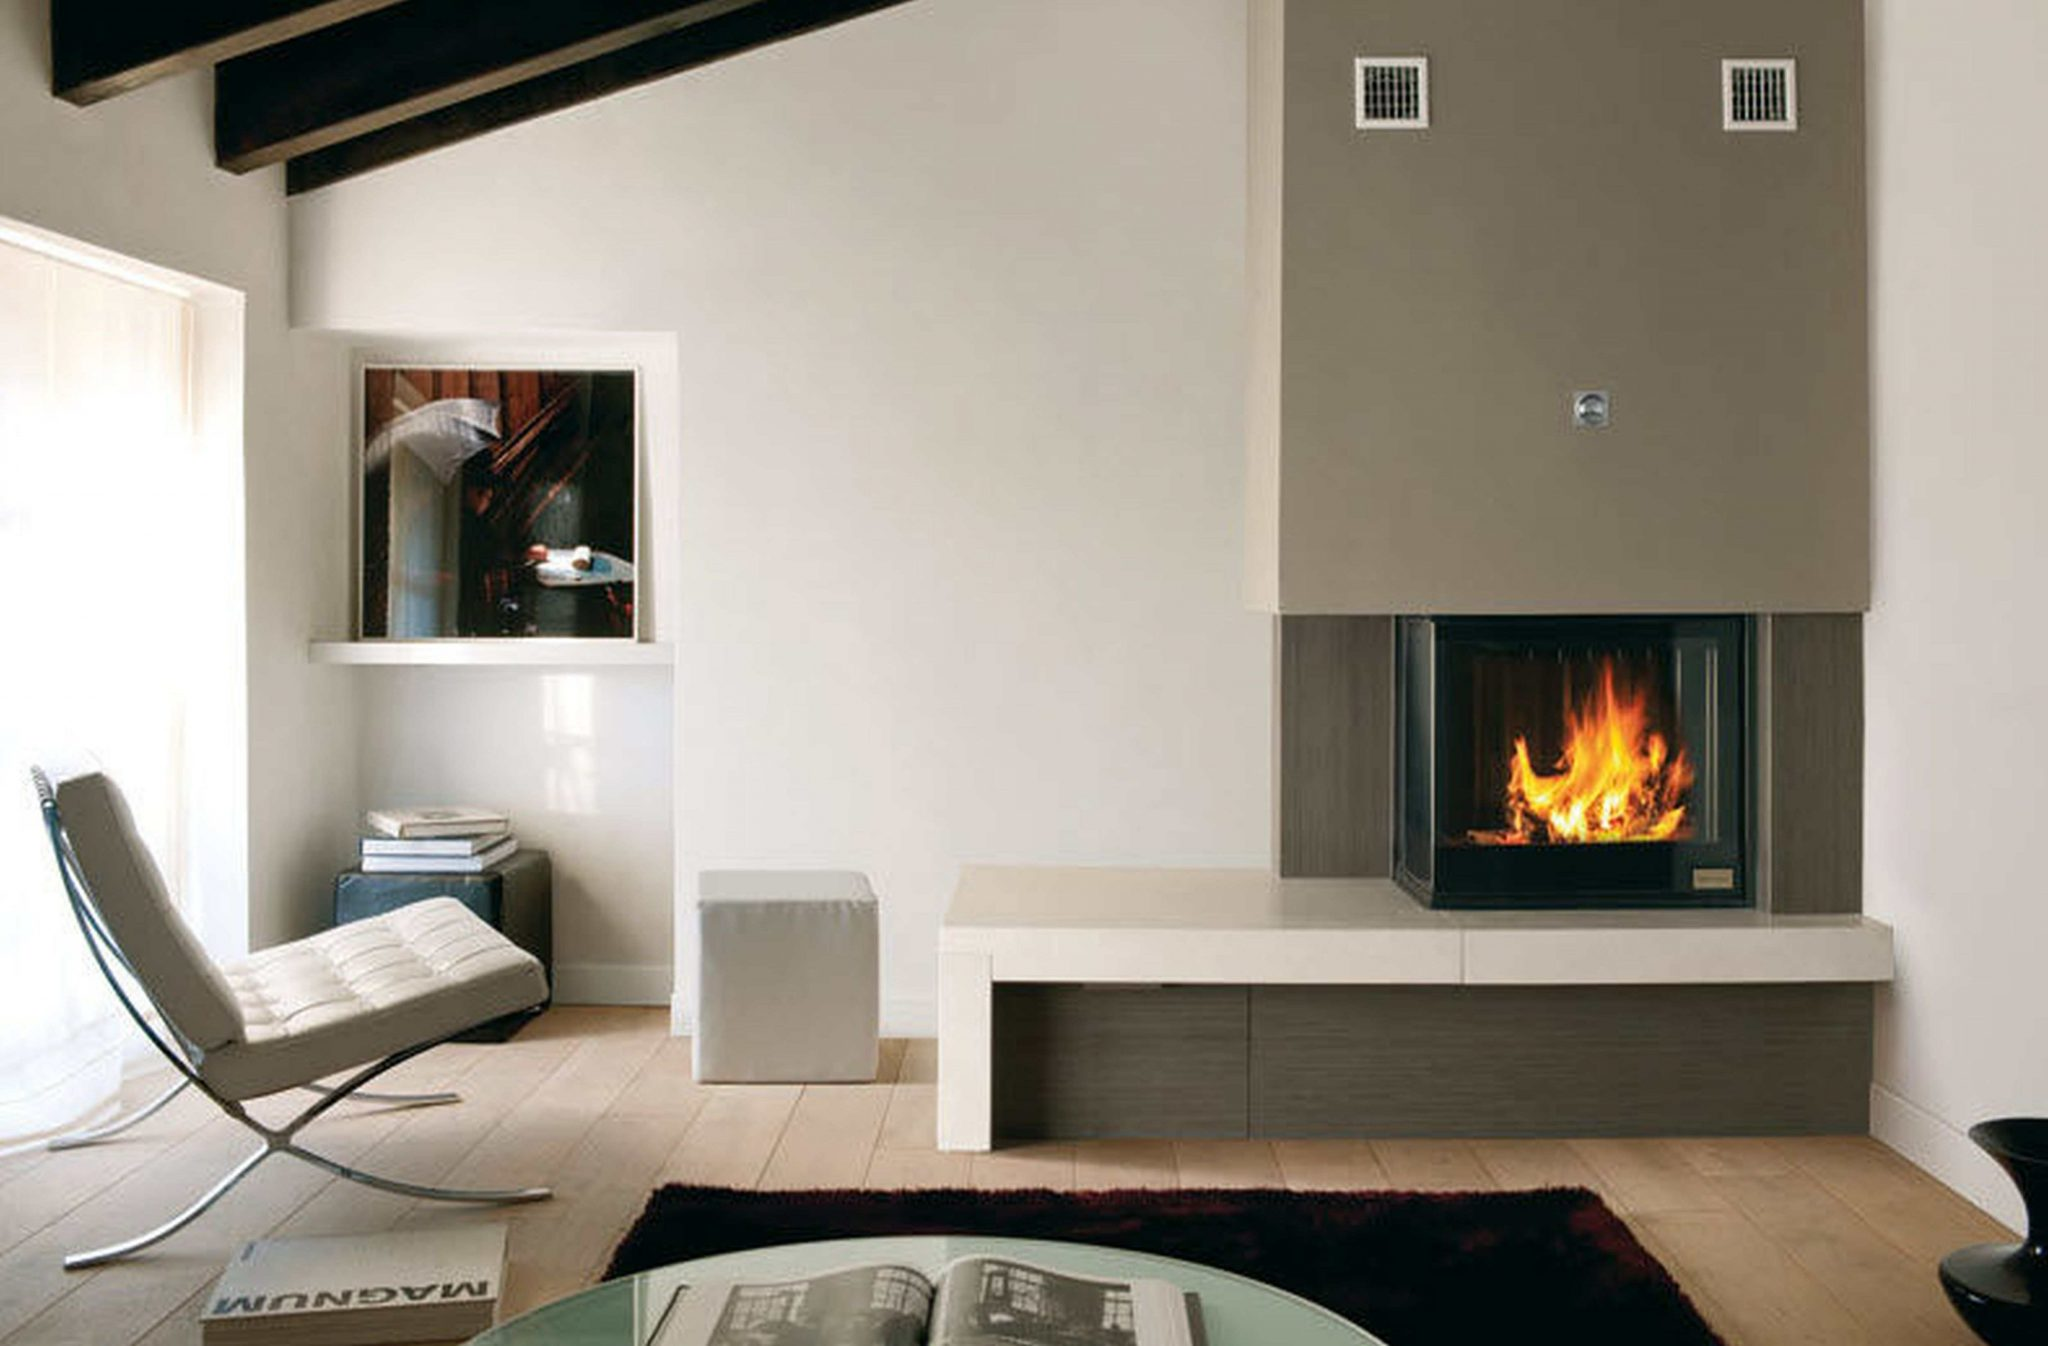 2016 - Gas fireplaces for small spaces property ...